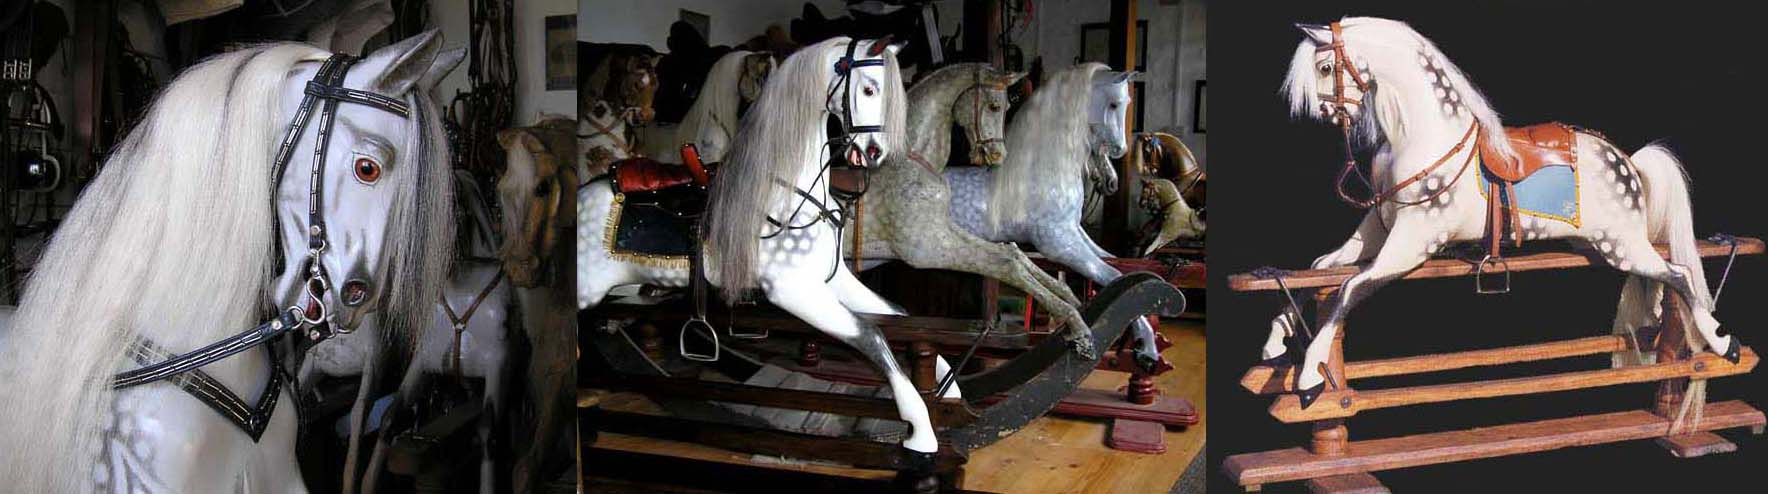 Antique Leach and Ayres rocking horses